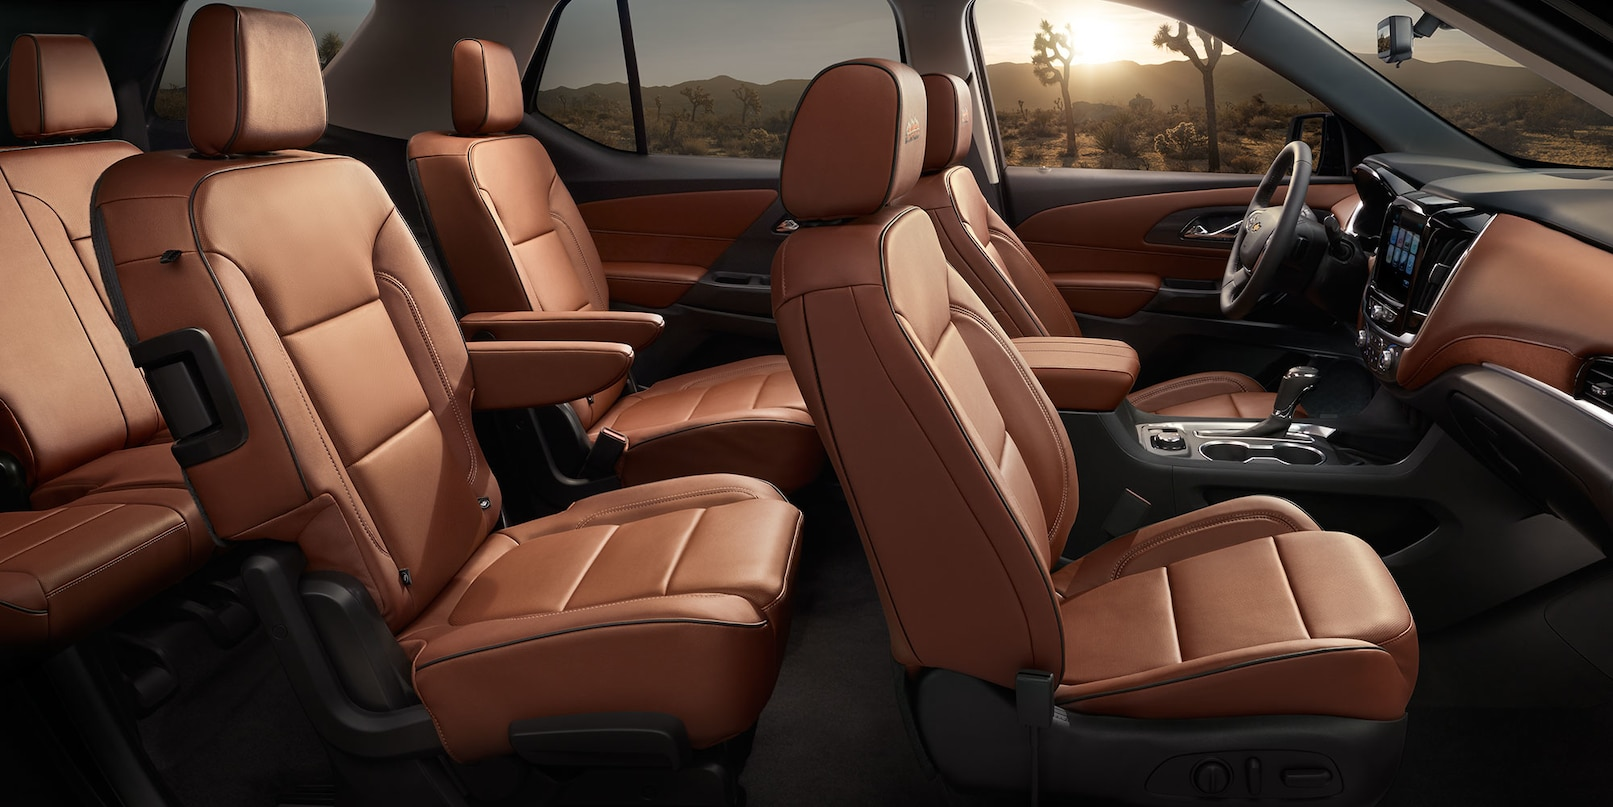 Comfortable Interior of the Chevrolet Equinox